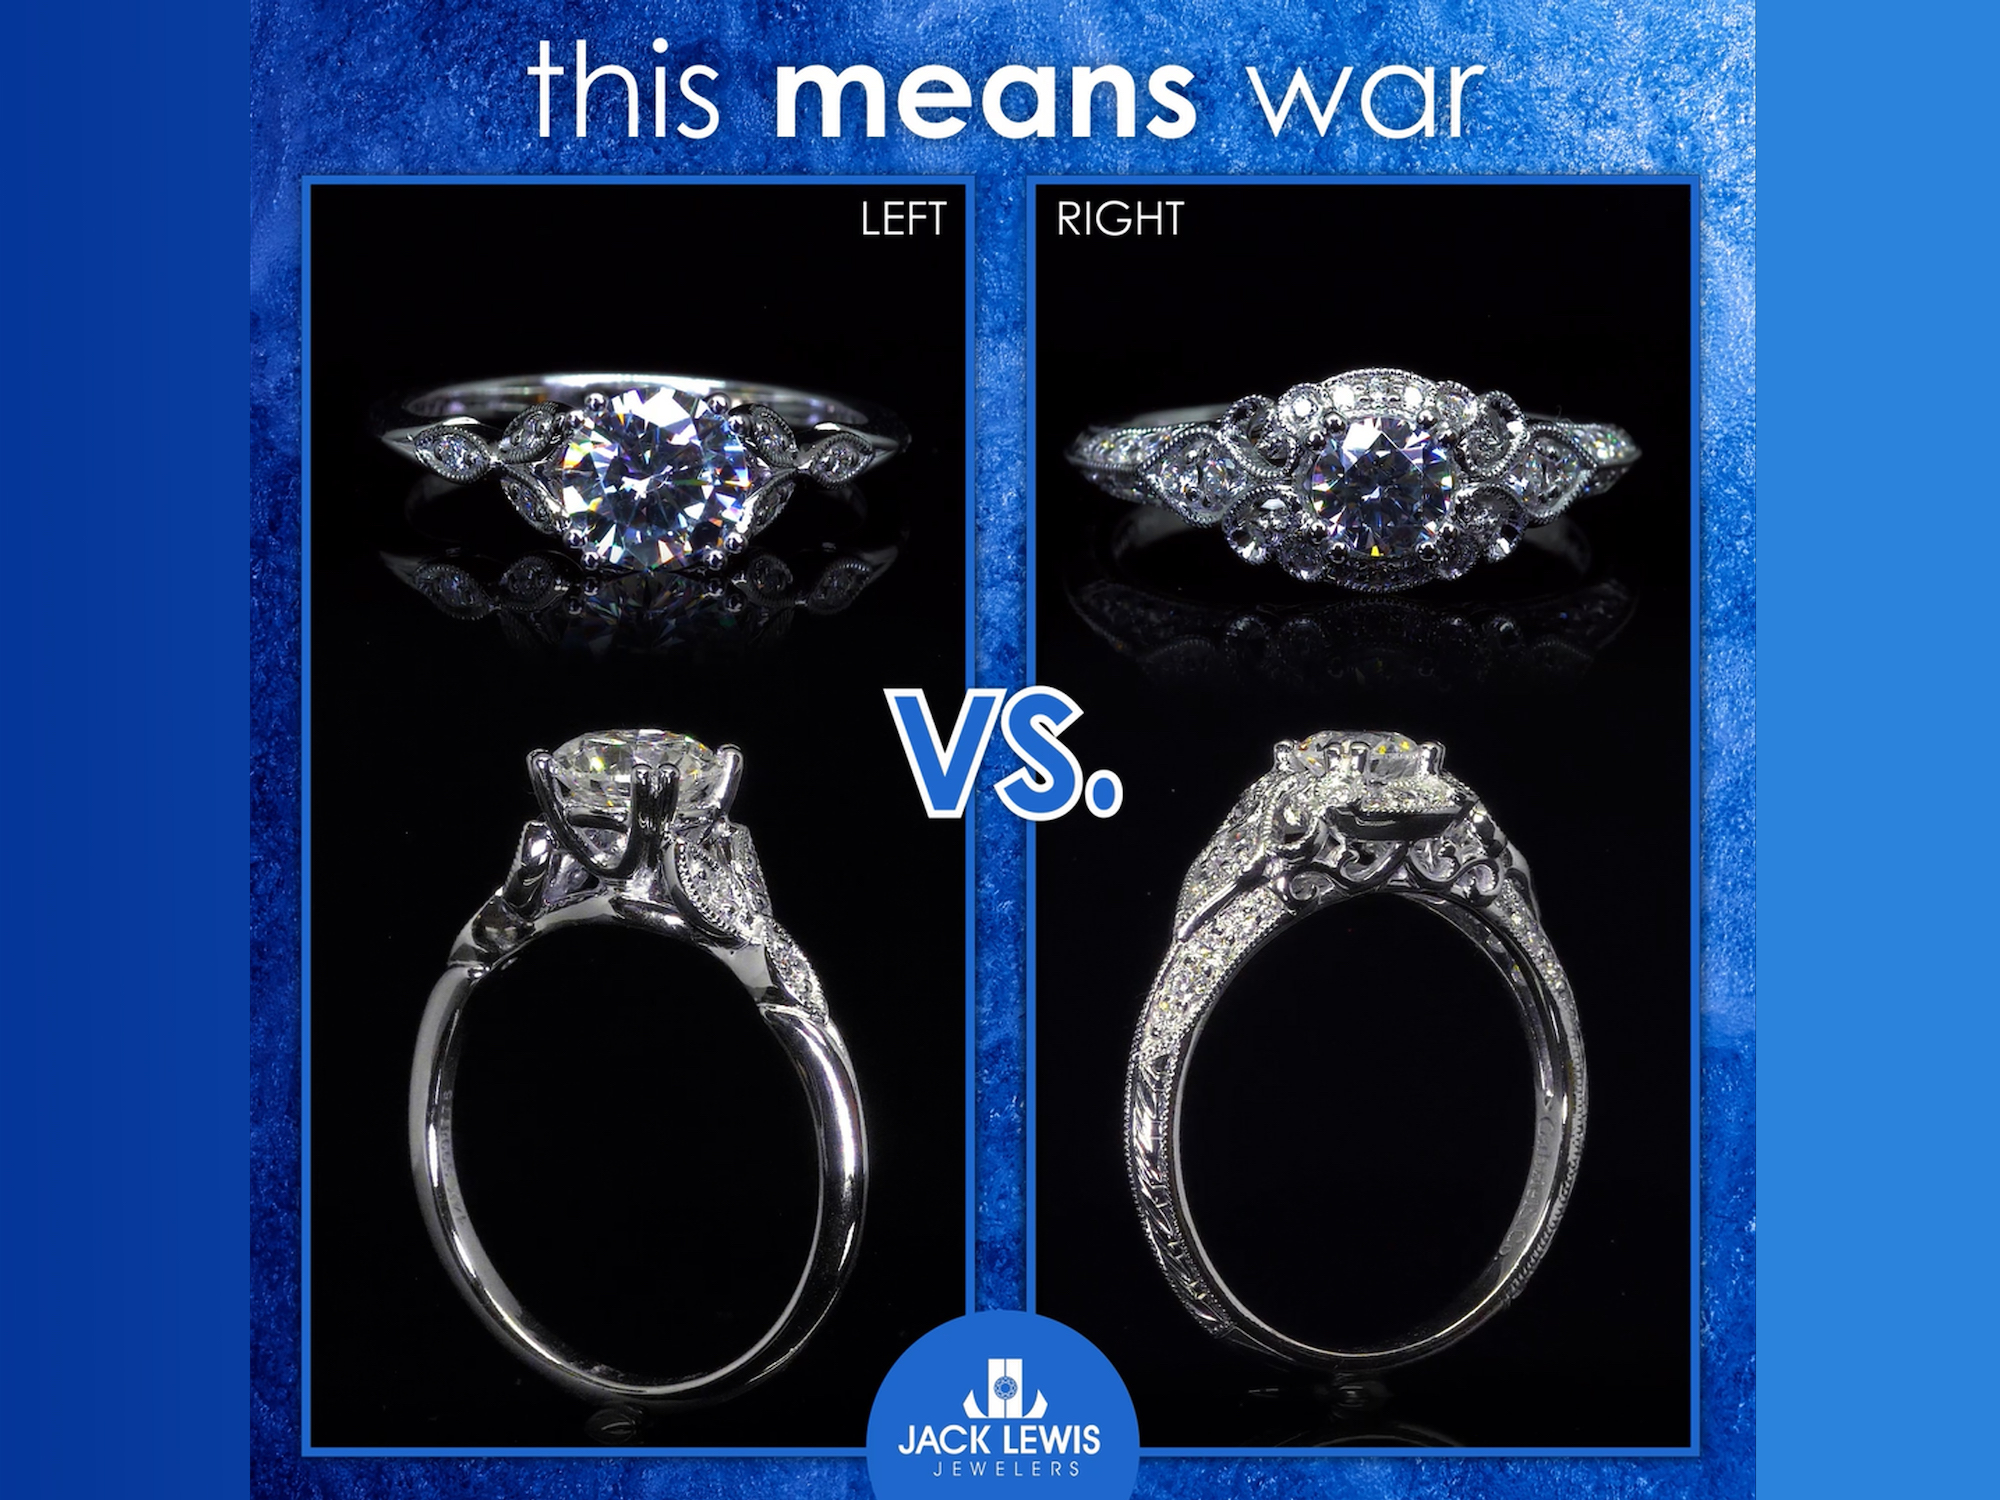 Two diamond engagement rings side by side for the viewer to choose between which they like better. On the left is a round diamond with diamonds on the side. On the right is a vintage style round diamond.